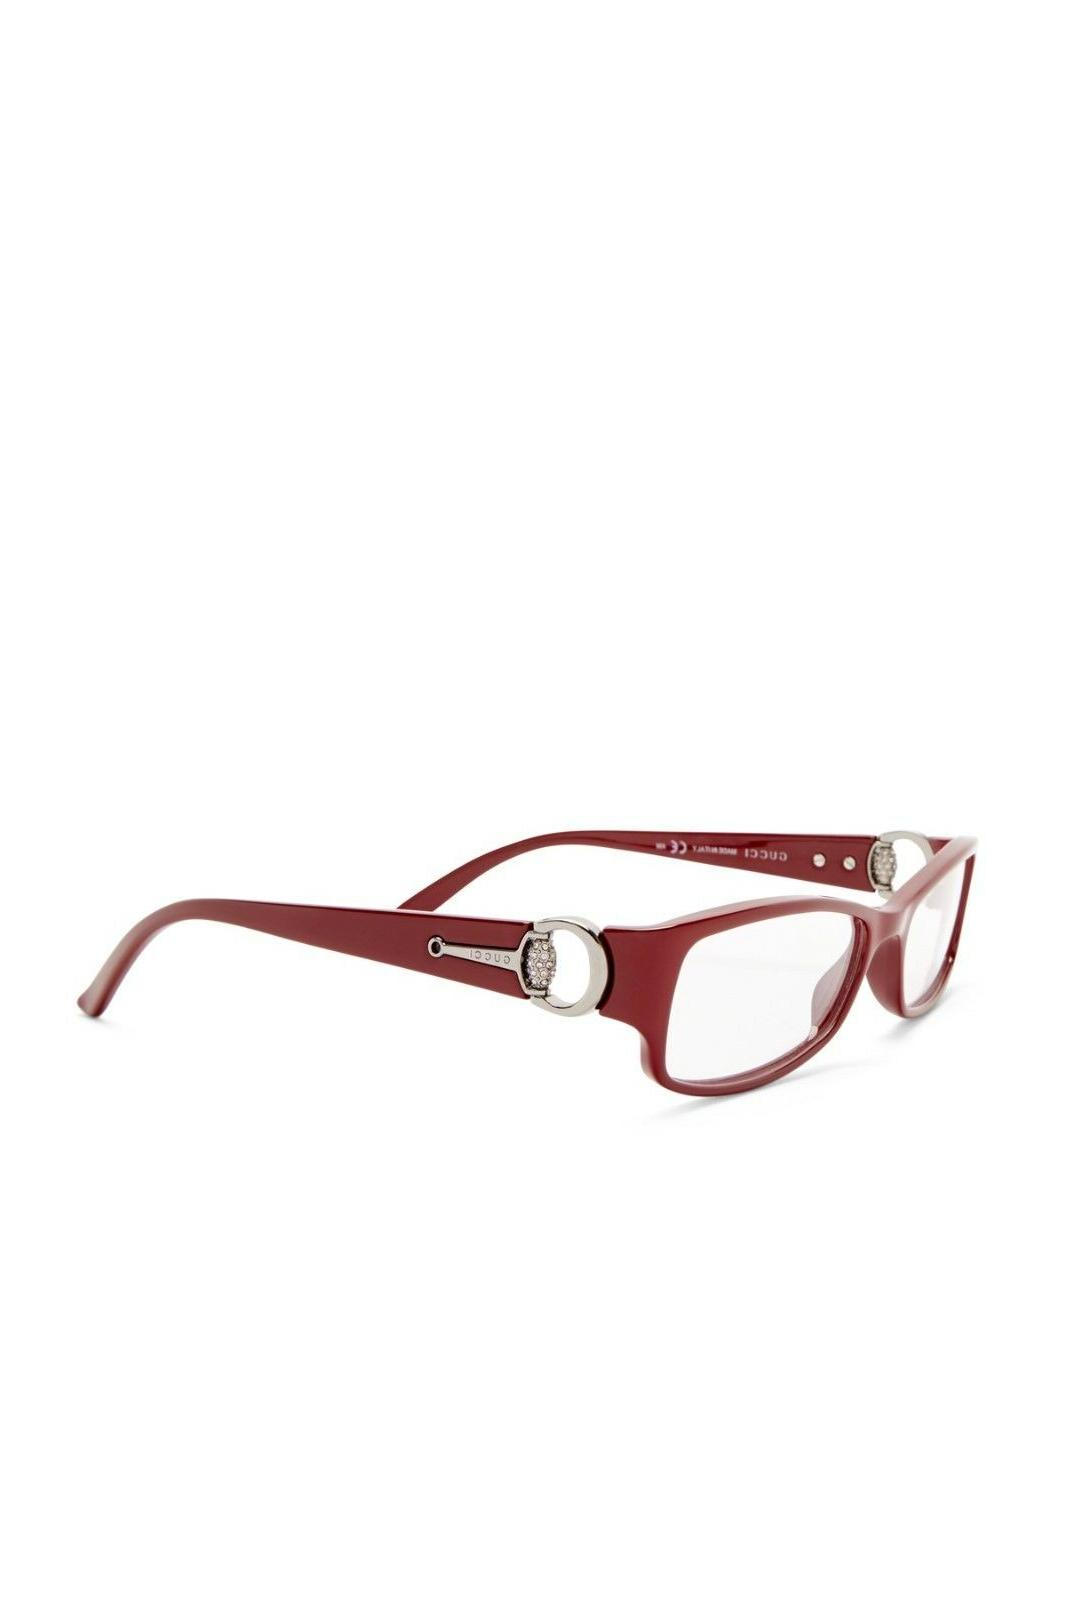 Gucci GG3553 Red w/Crystals Frame 52 16 140***